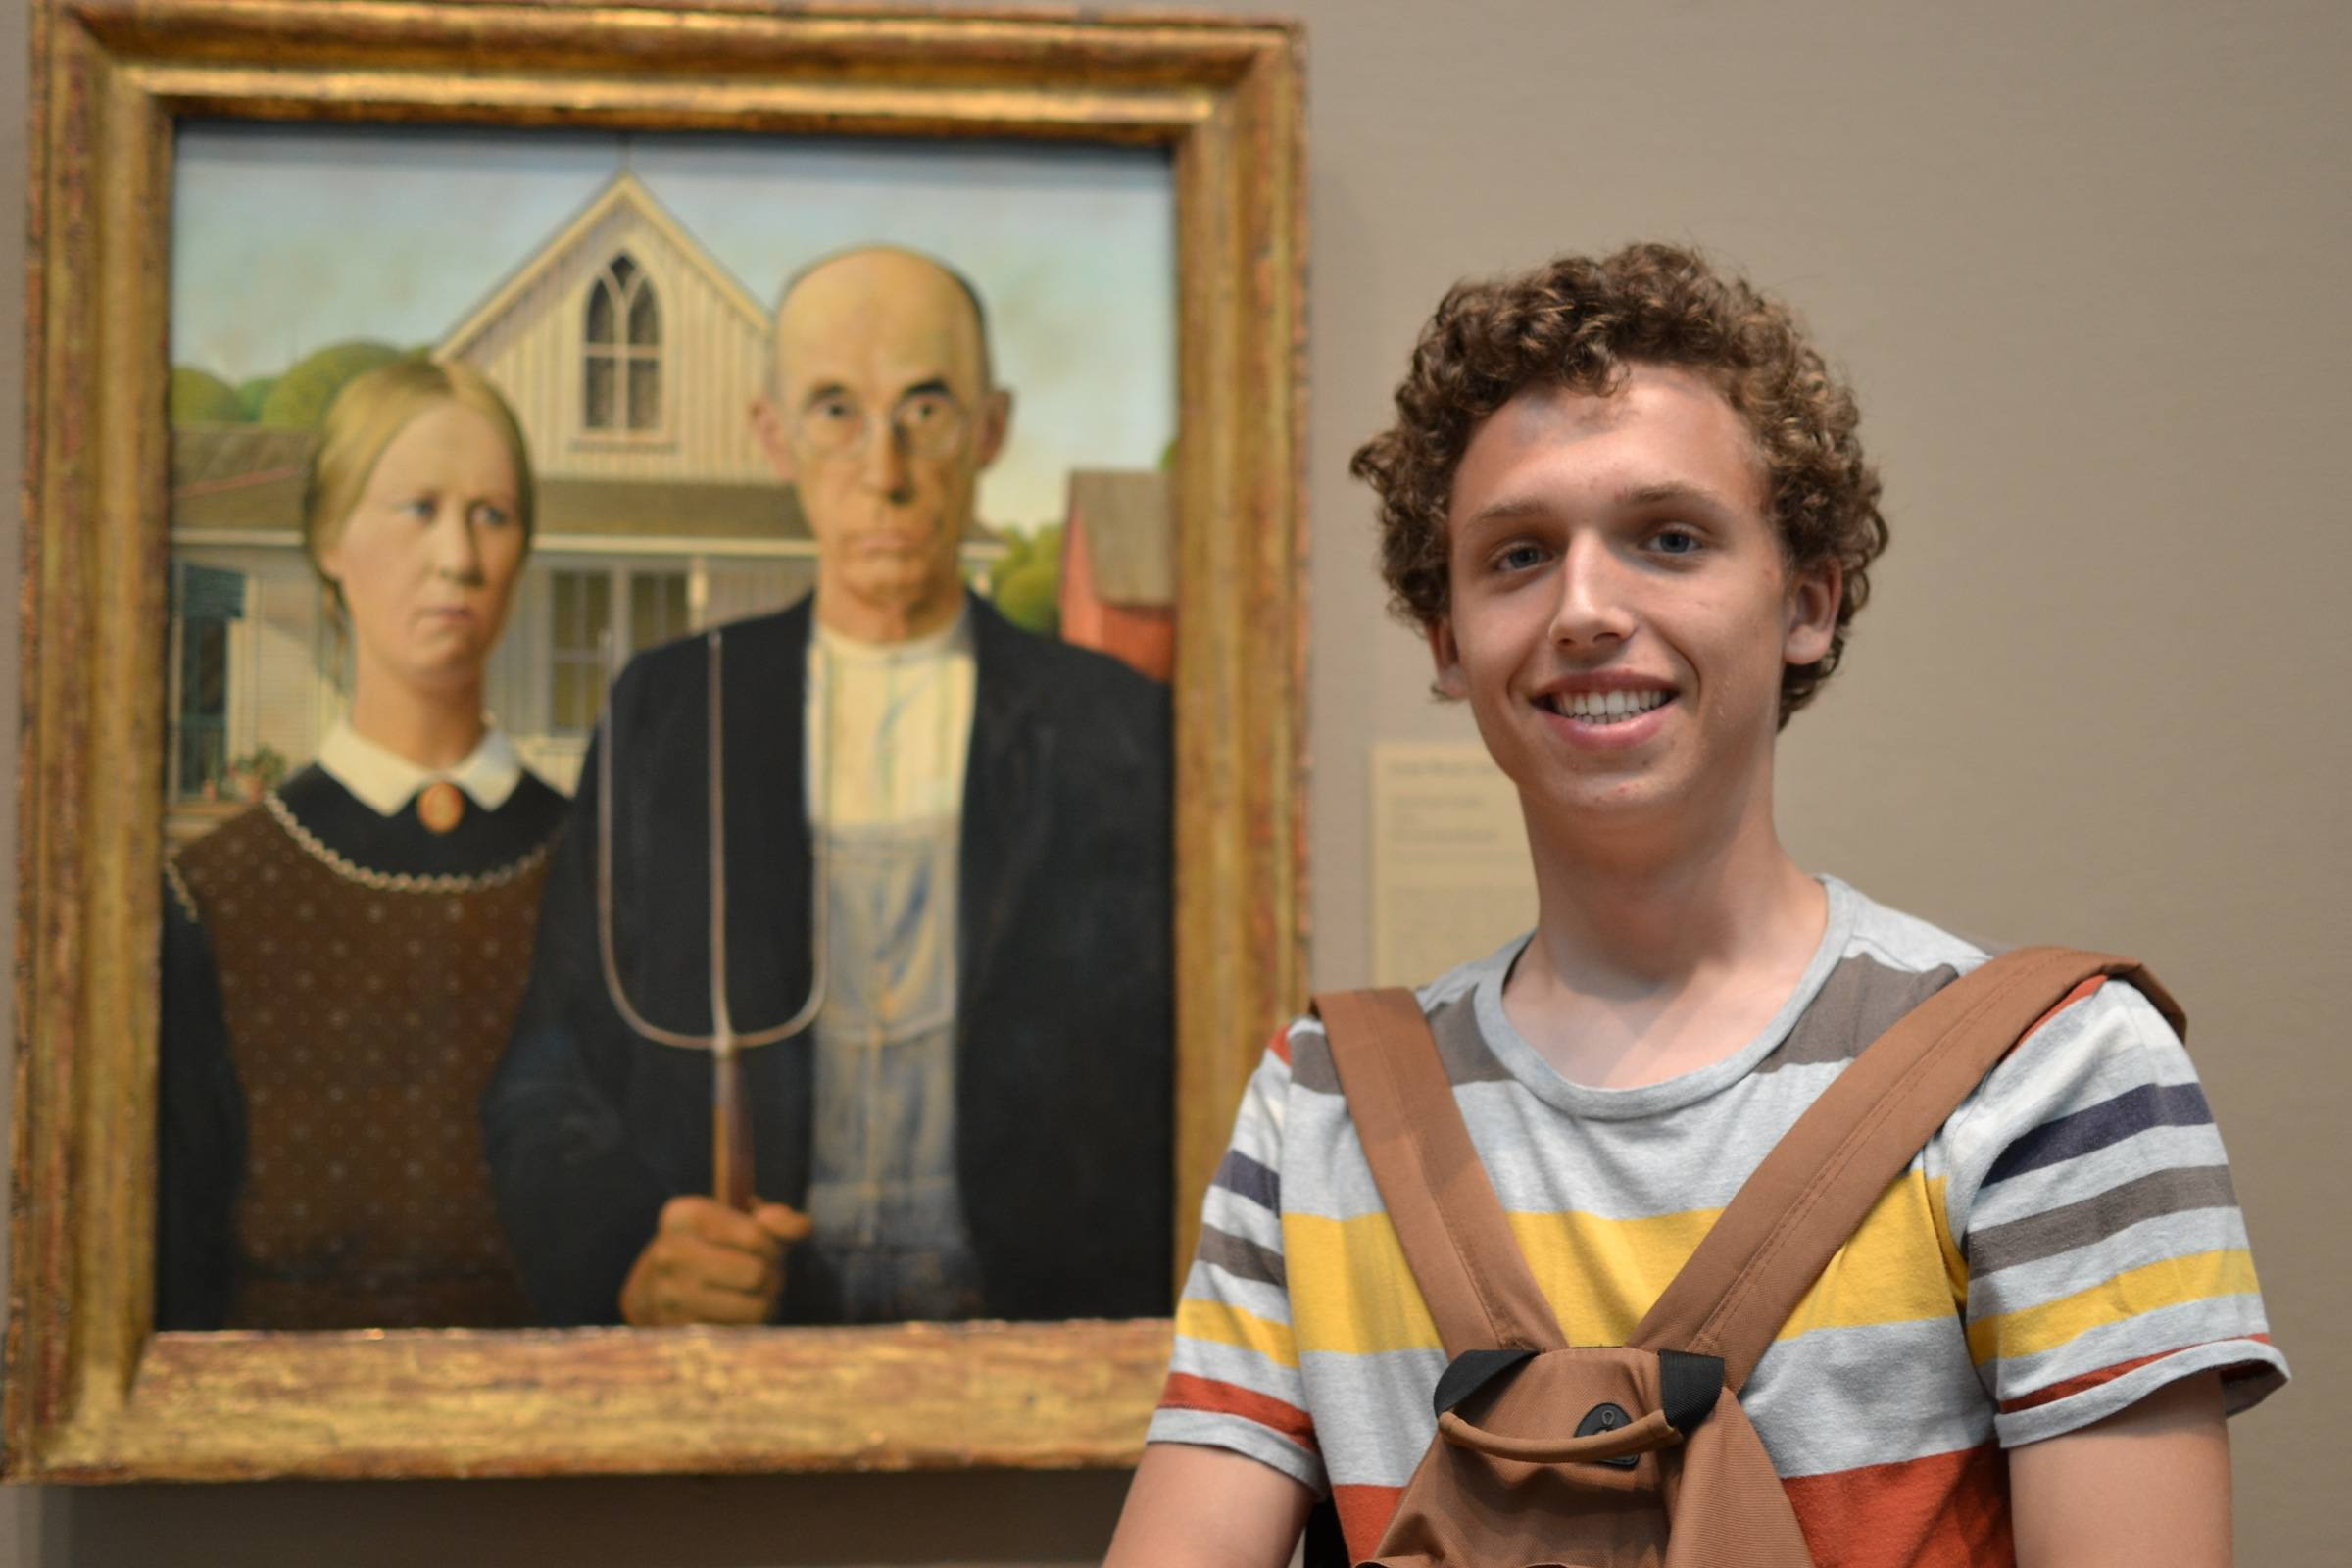 American Gothic. The security guard told me that I looked too happy for that photo